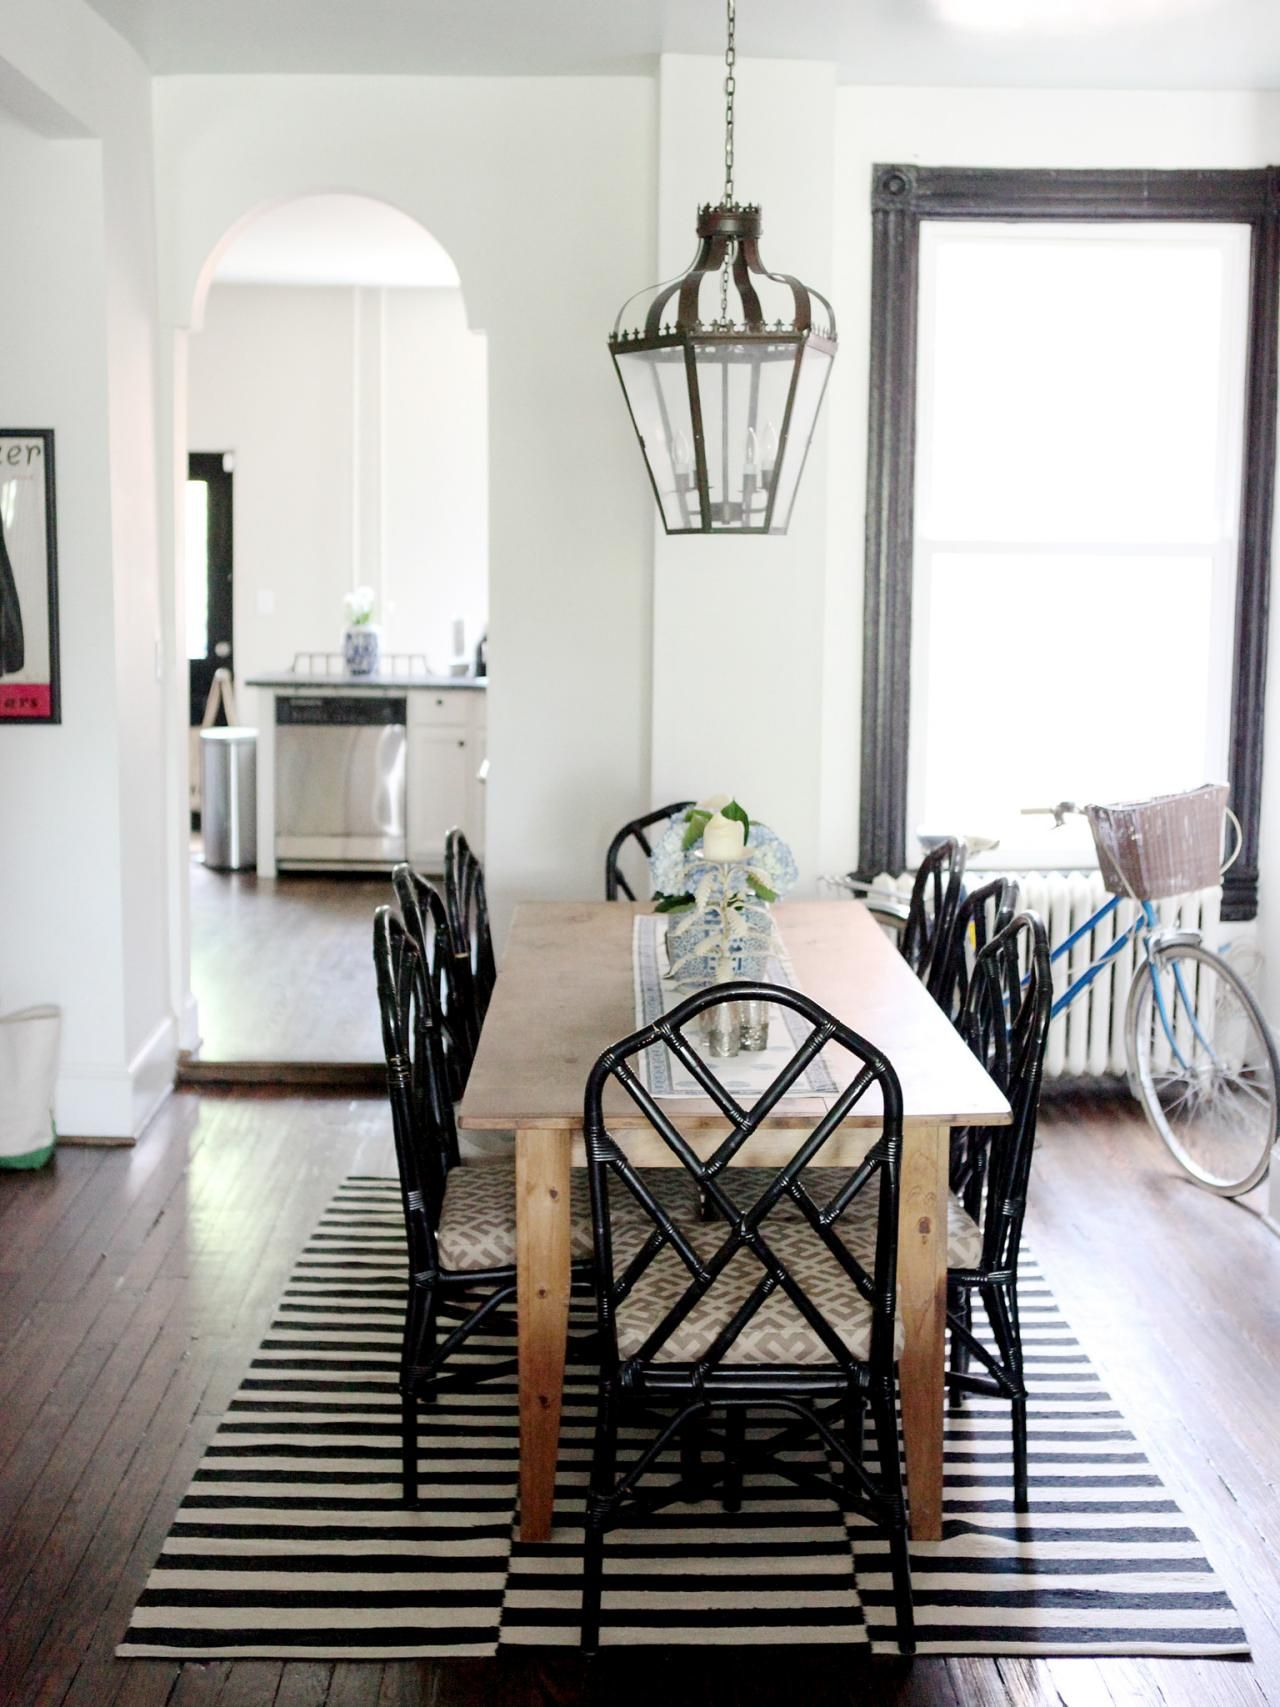 Black Farmhouse Chairs - Chippendale chairs are mixed with a custom farm table for an eclectic vintage vibe in